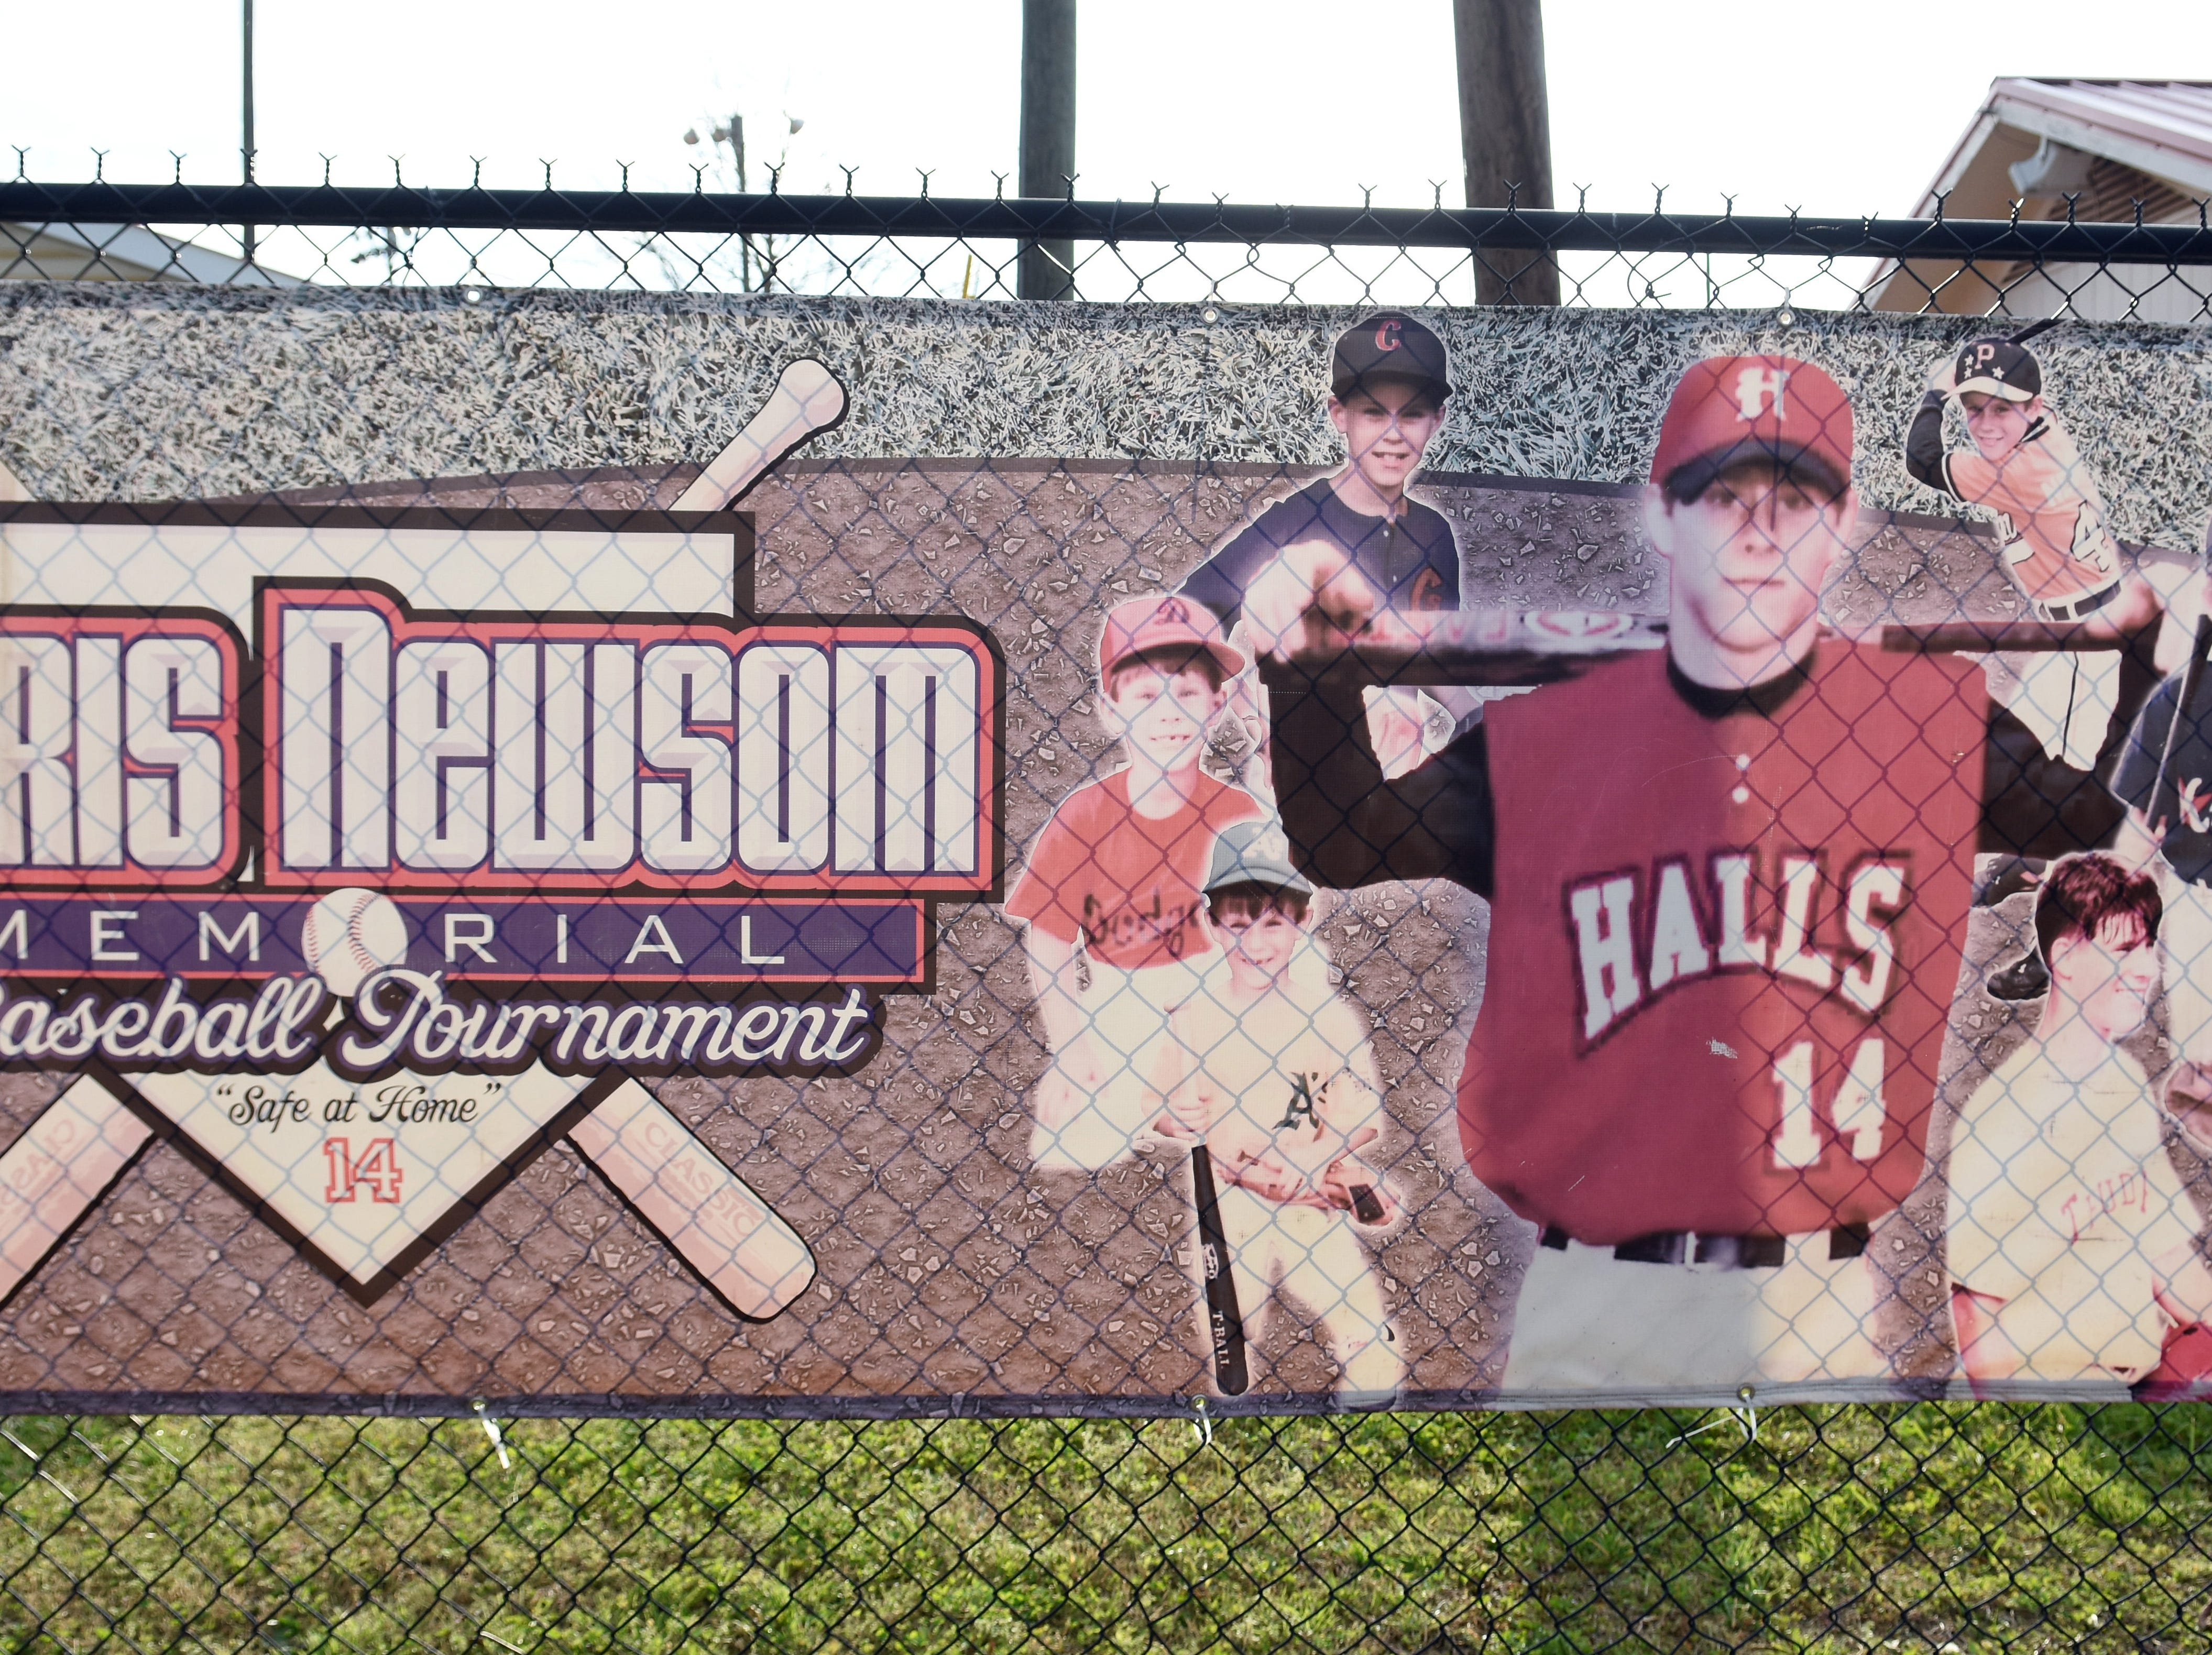 This banner remembering Chris Newsom hangs on the fence at Halls Community Park, host of the annual Chris Newsom Memorial Tournament. The park has hosted the tournament since it was established in 2008.